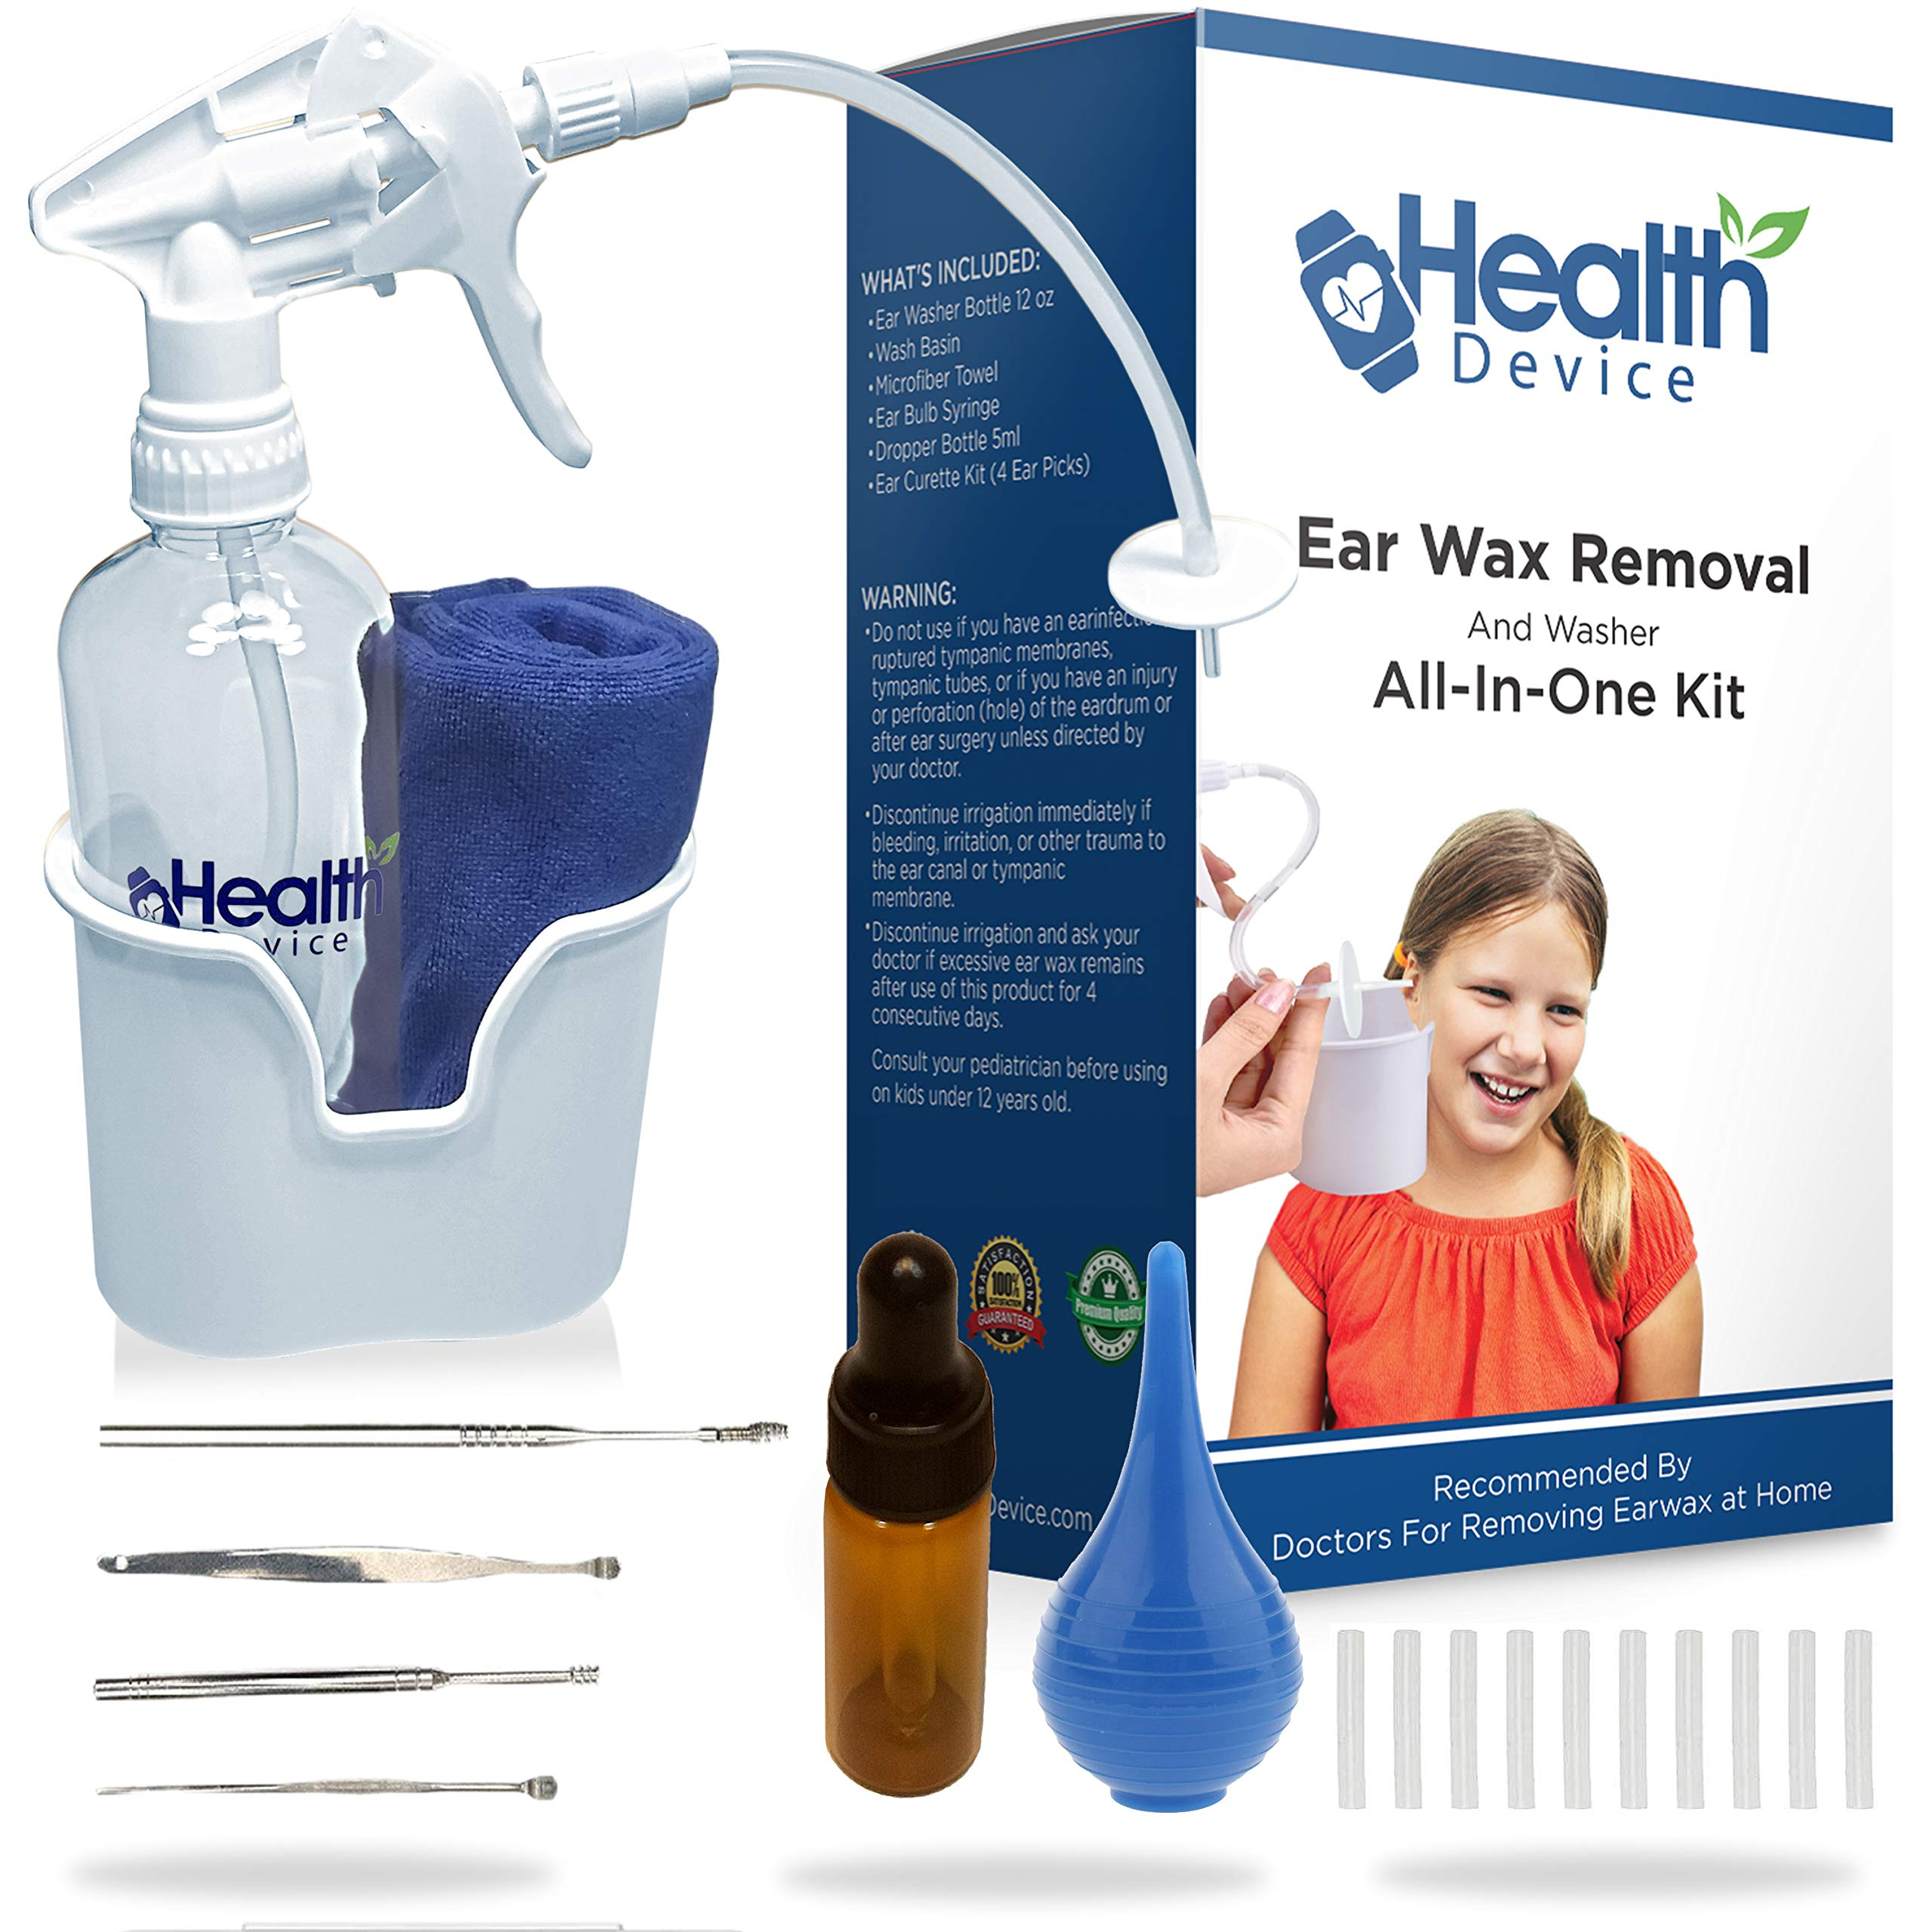 All-in-One Ear Wax Removal Kit: Ear Irrigation Spray Bottle, Wash Basin, Ear Pick Curette Tools, Ear Bulb Syringe, Dropper Bottle, Cleaning Towel & Extra Tips - Improves Hearing for Adults & Kids